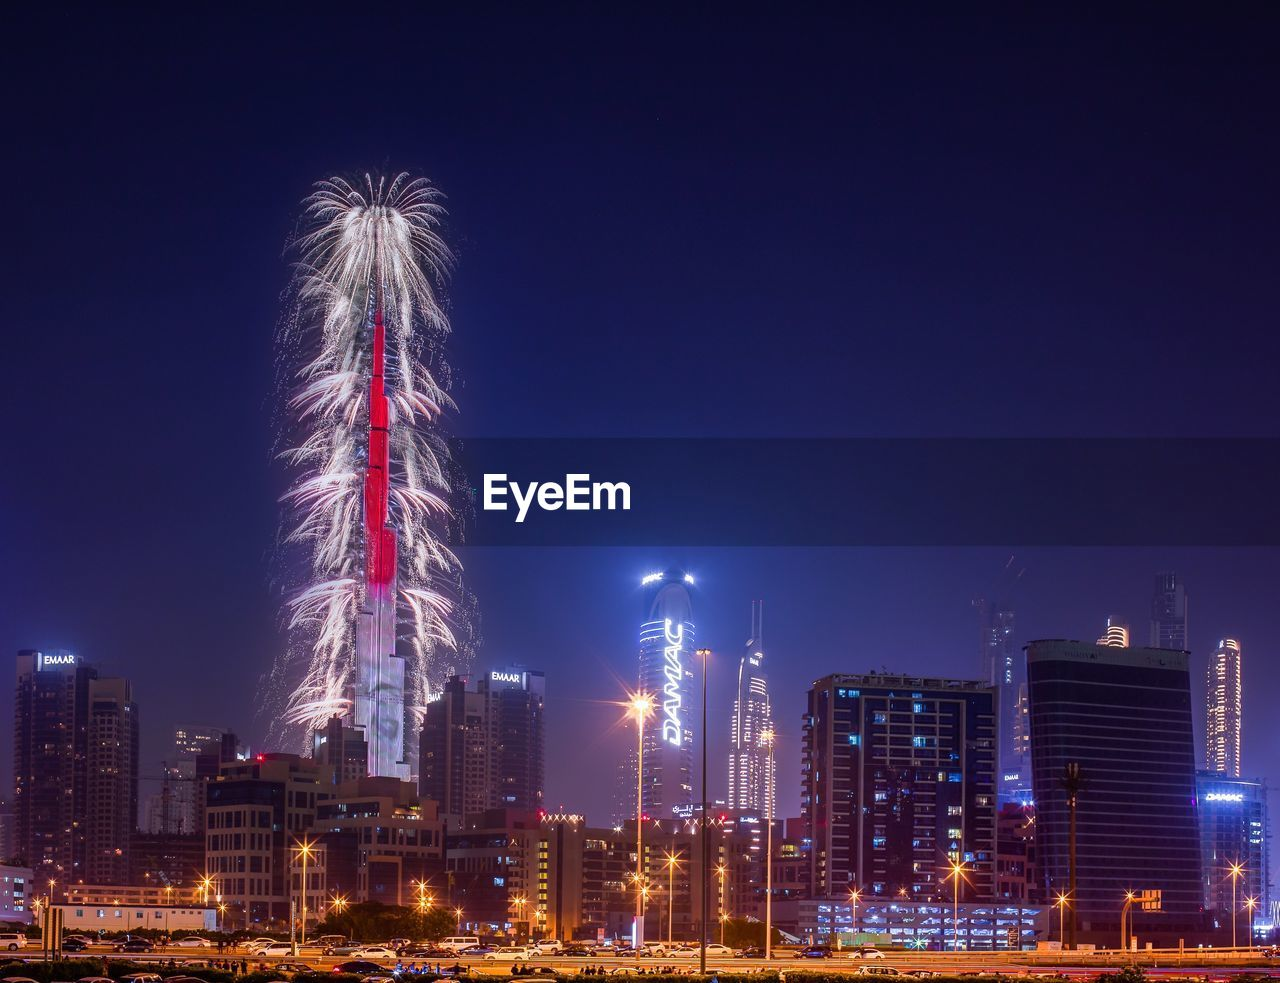 building exterior, architecture, illuminated, night, built structure, sky, city, tall - high, skyscraper, office building exterior, cityscape, building, tower, urban skyline, landscape, nature, no people, motion, glowing, long exposure, outdoors, firework, modern, financial district, firework display, light, firework - man made object, spire